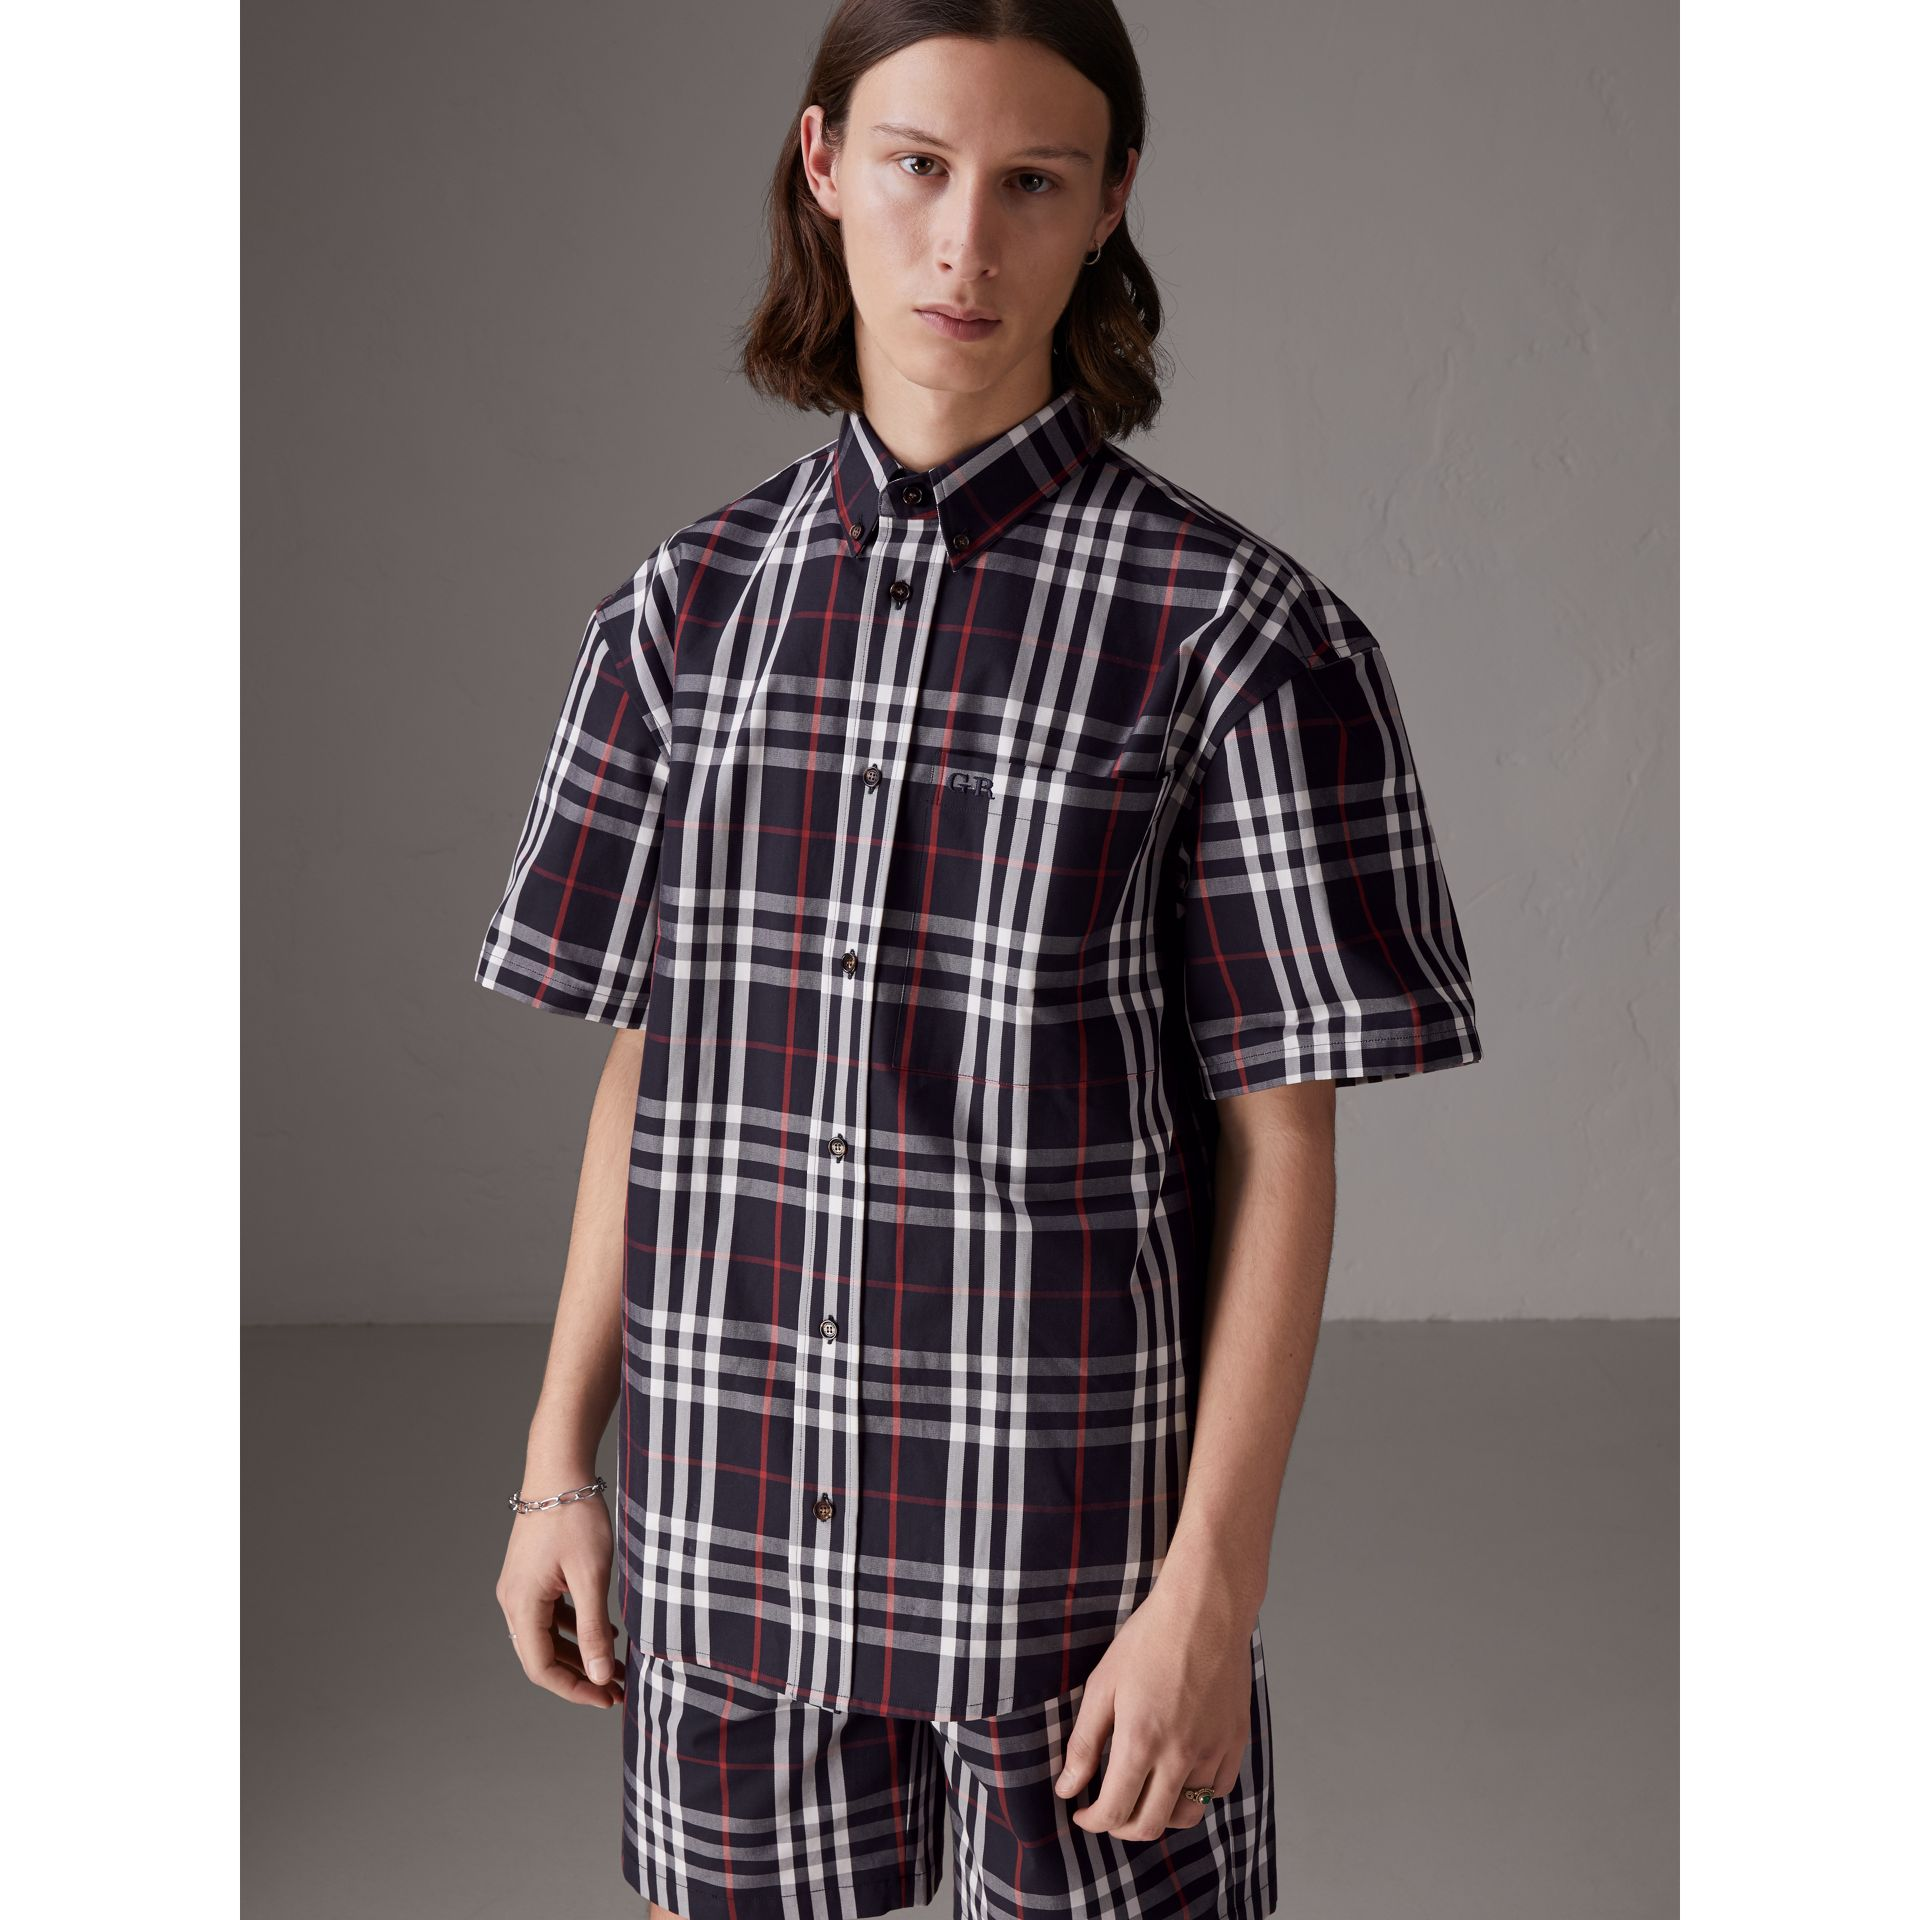 Gosha x Burberry Short-sleeve Check Shirt in Navy | Burberry United Kingdom - gallery image 0